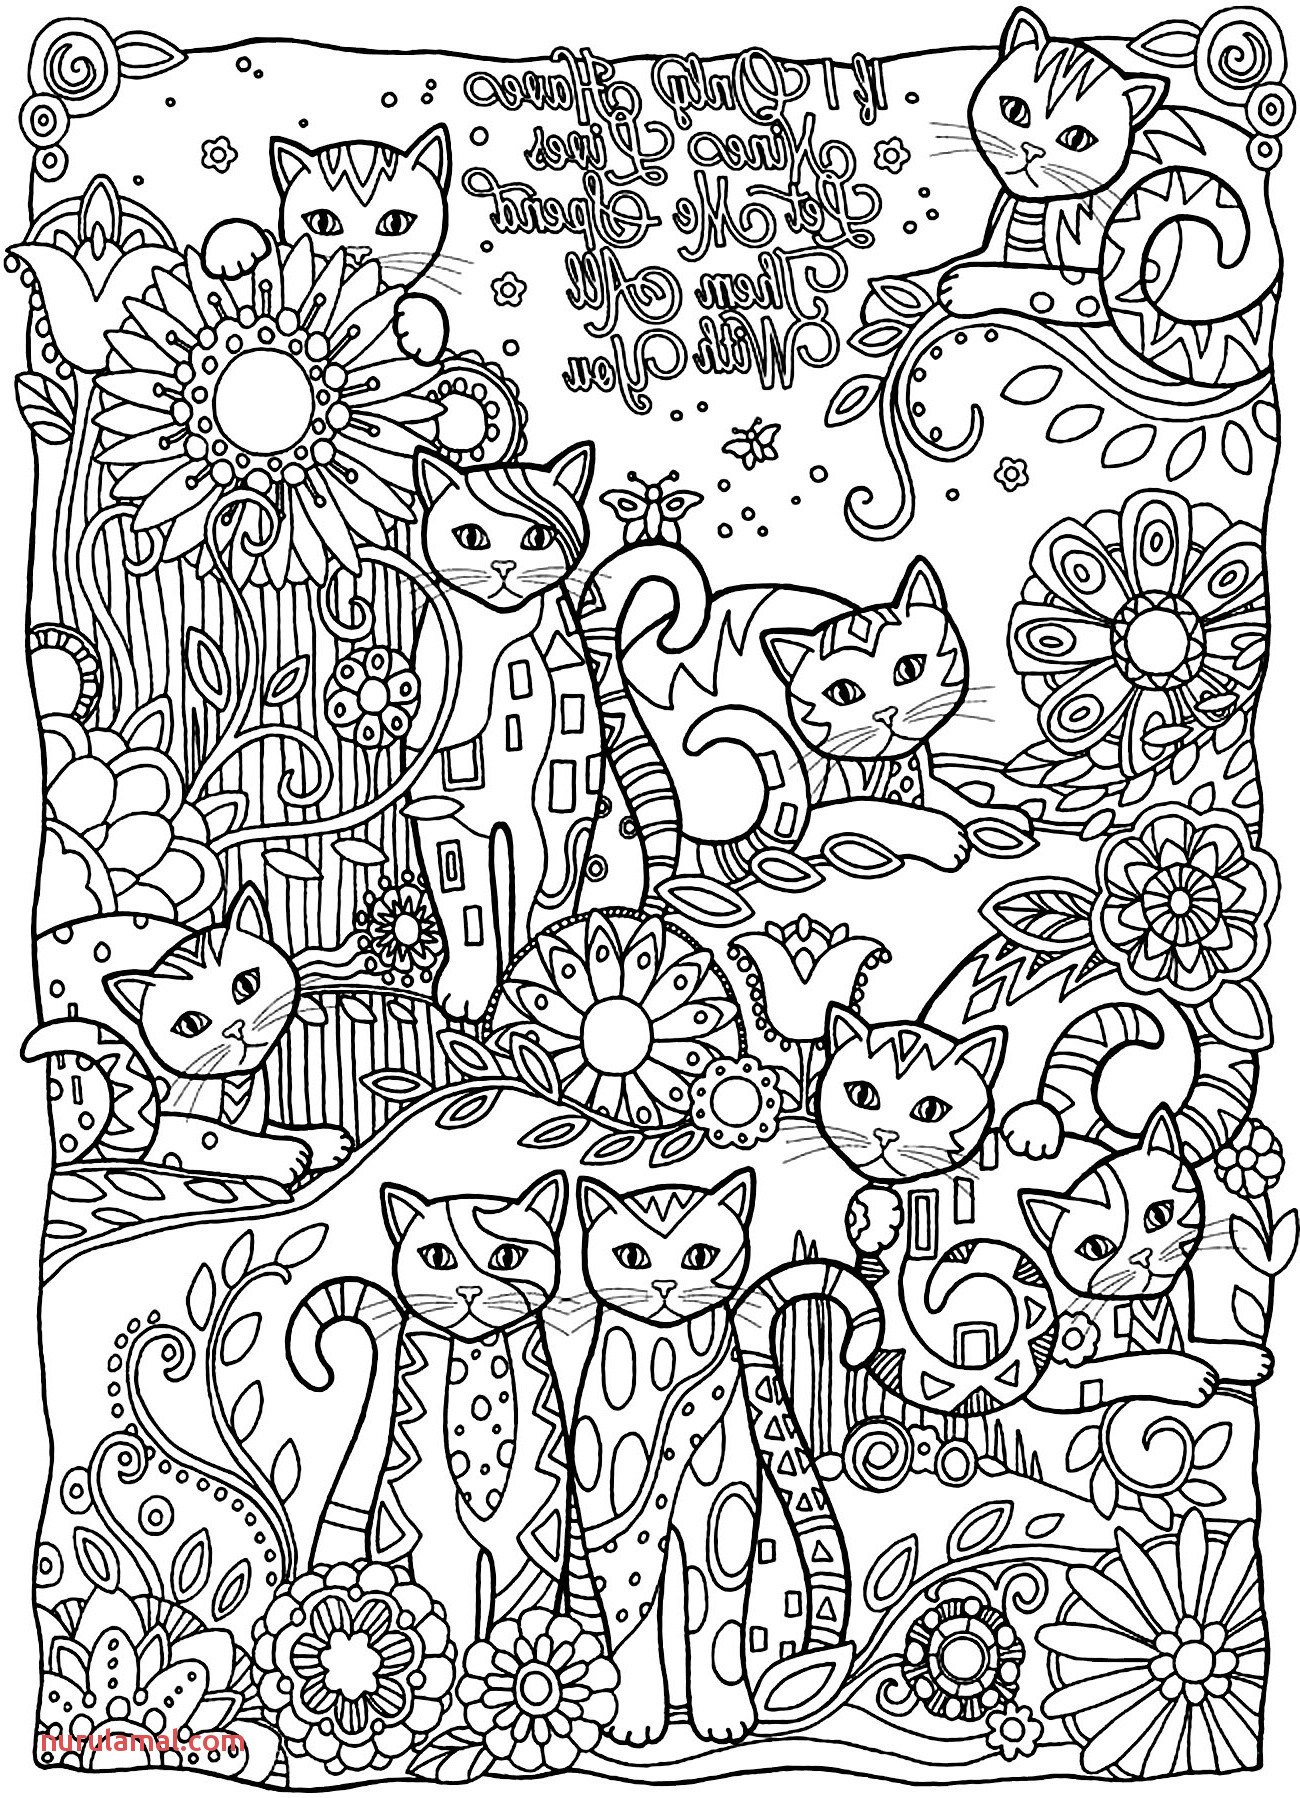 letter r coloring sheet cool gallery picasso coloring pages residence update cool od dog free with regard of letter r coloring sheet